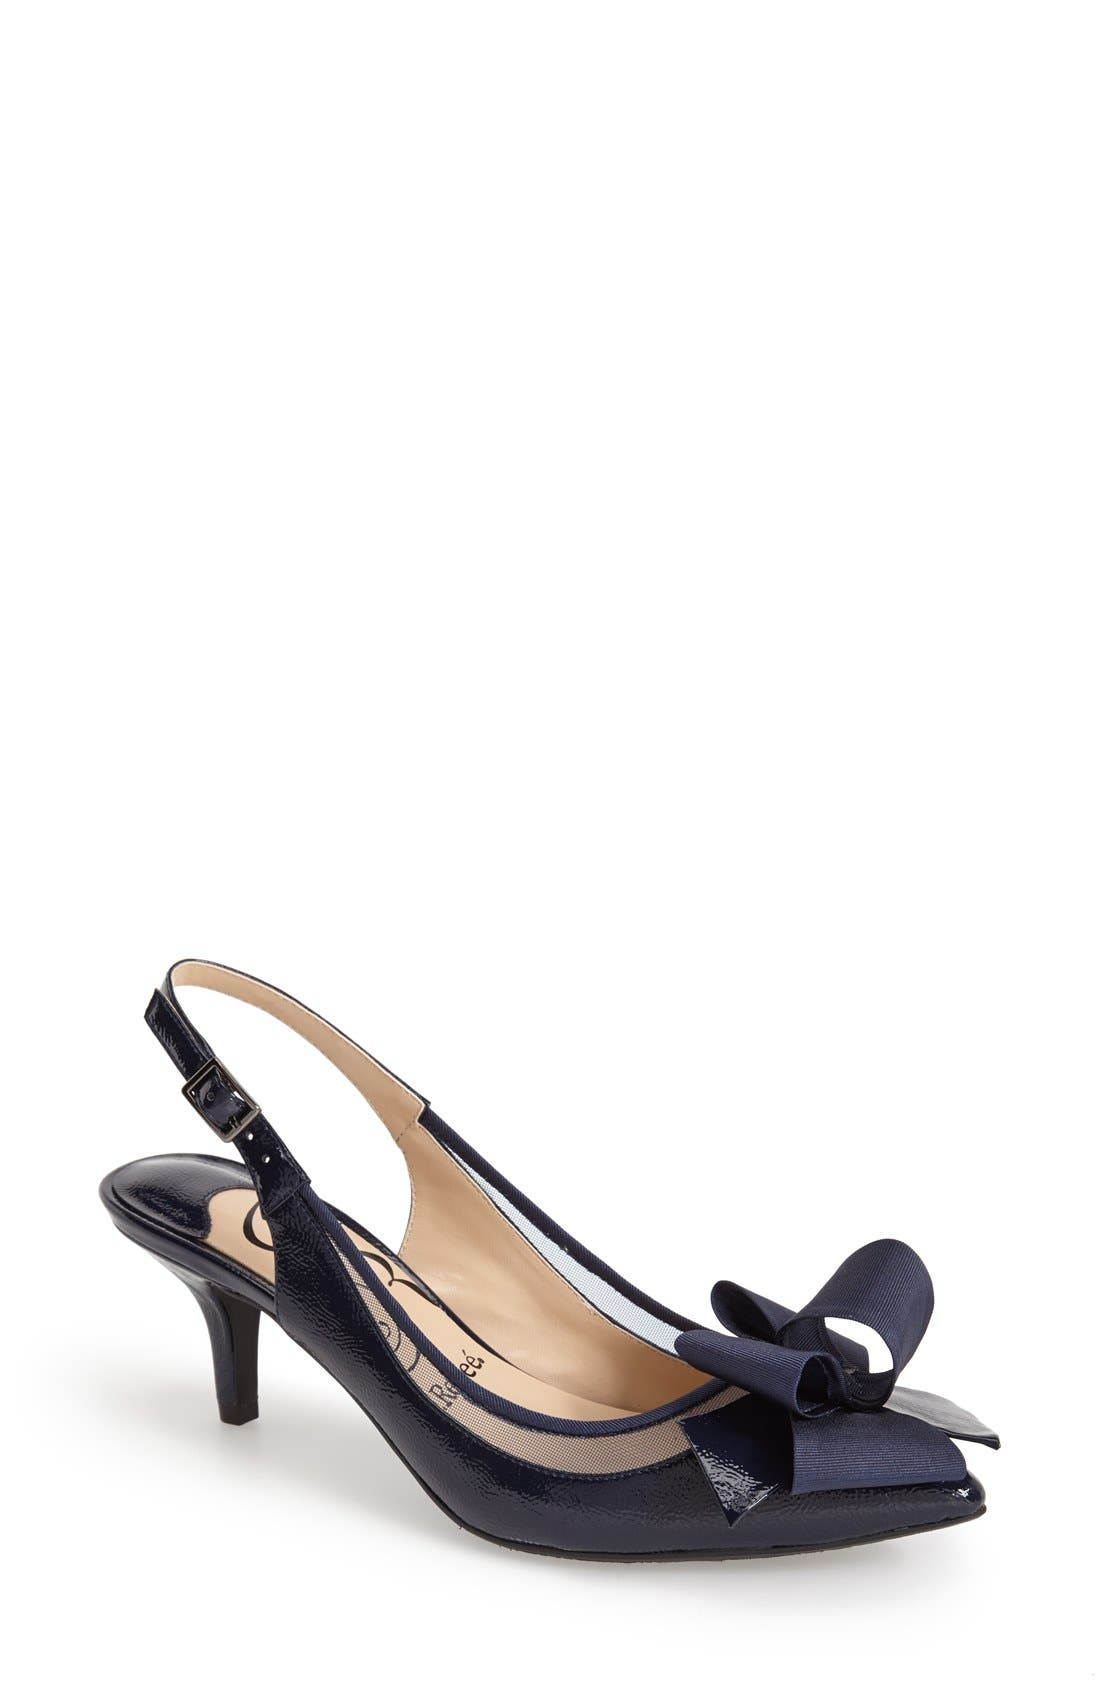 J. Reneé 'Garbi' Pointy Toe Bow Pump (Women)